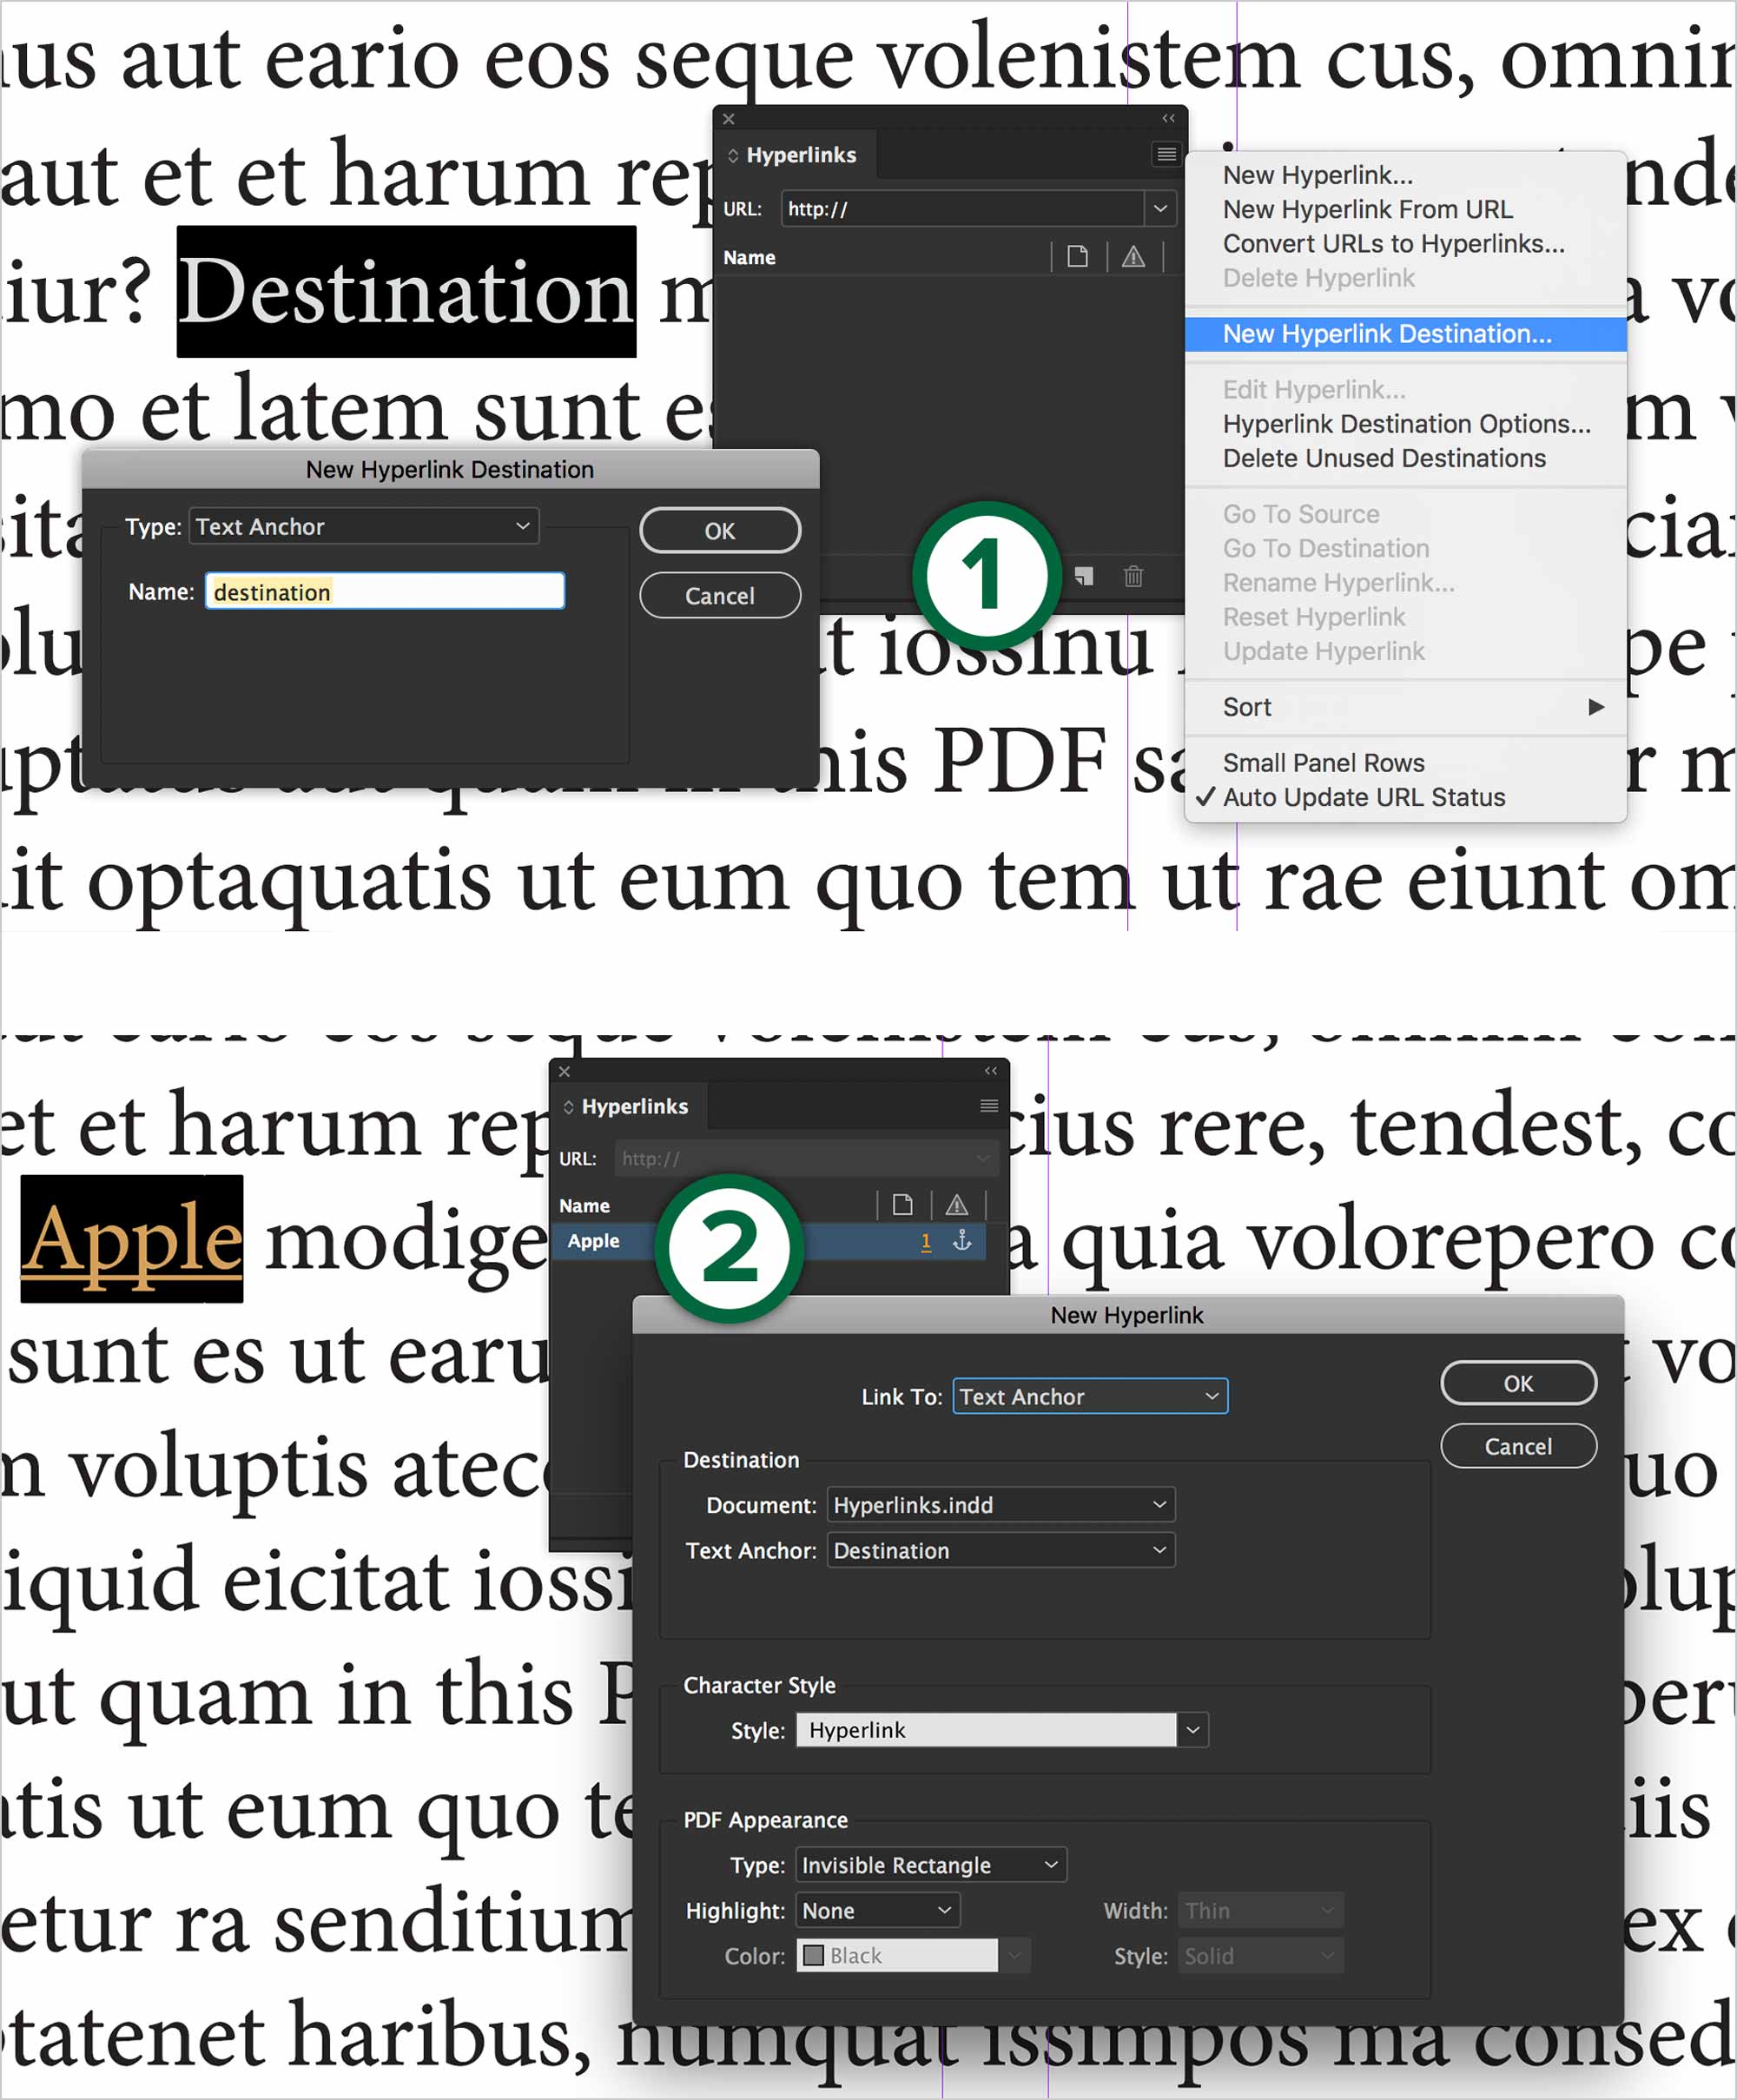 indesign-hyperlink-to-destination